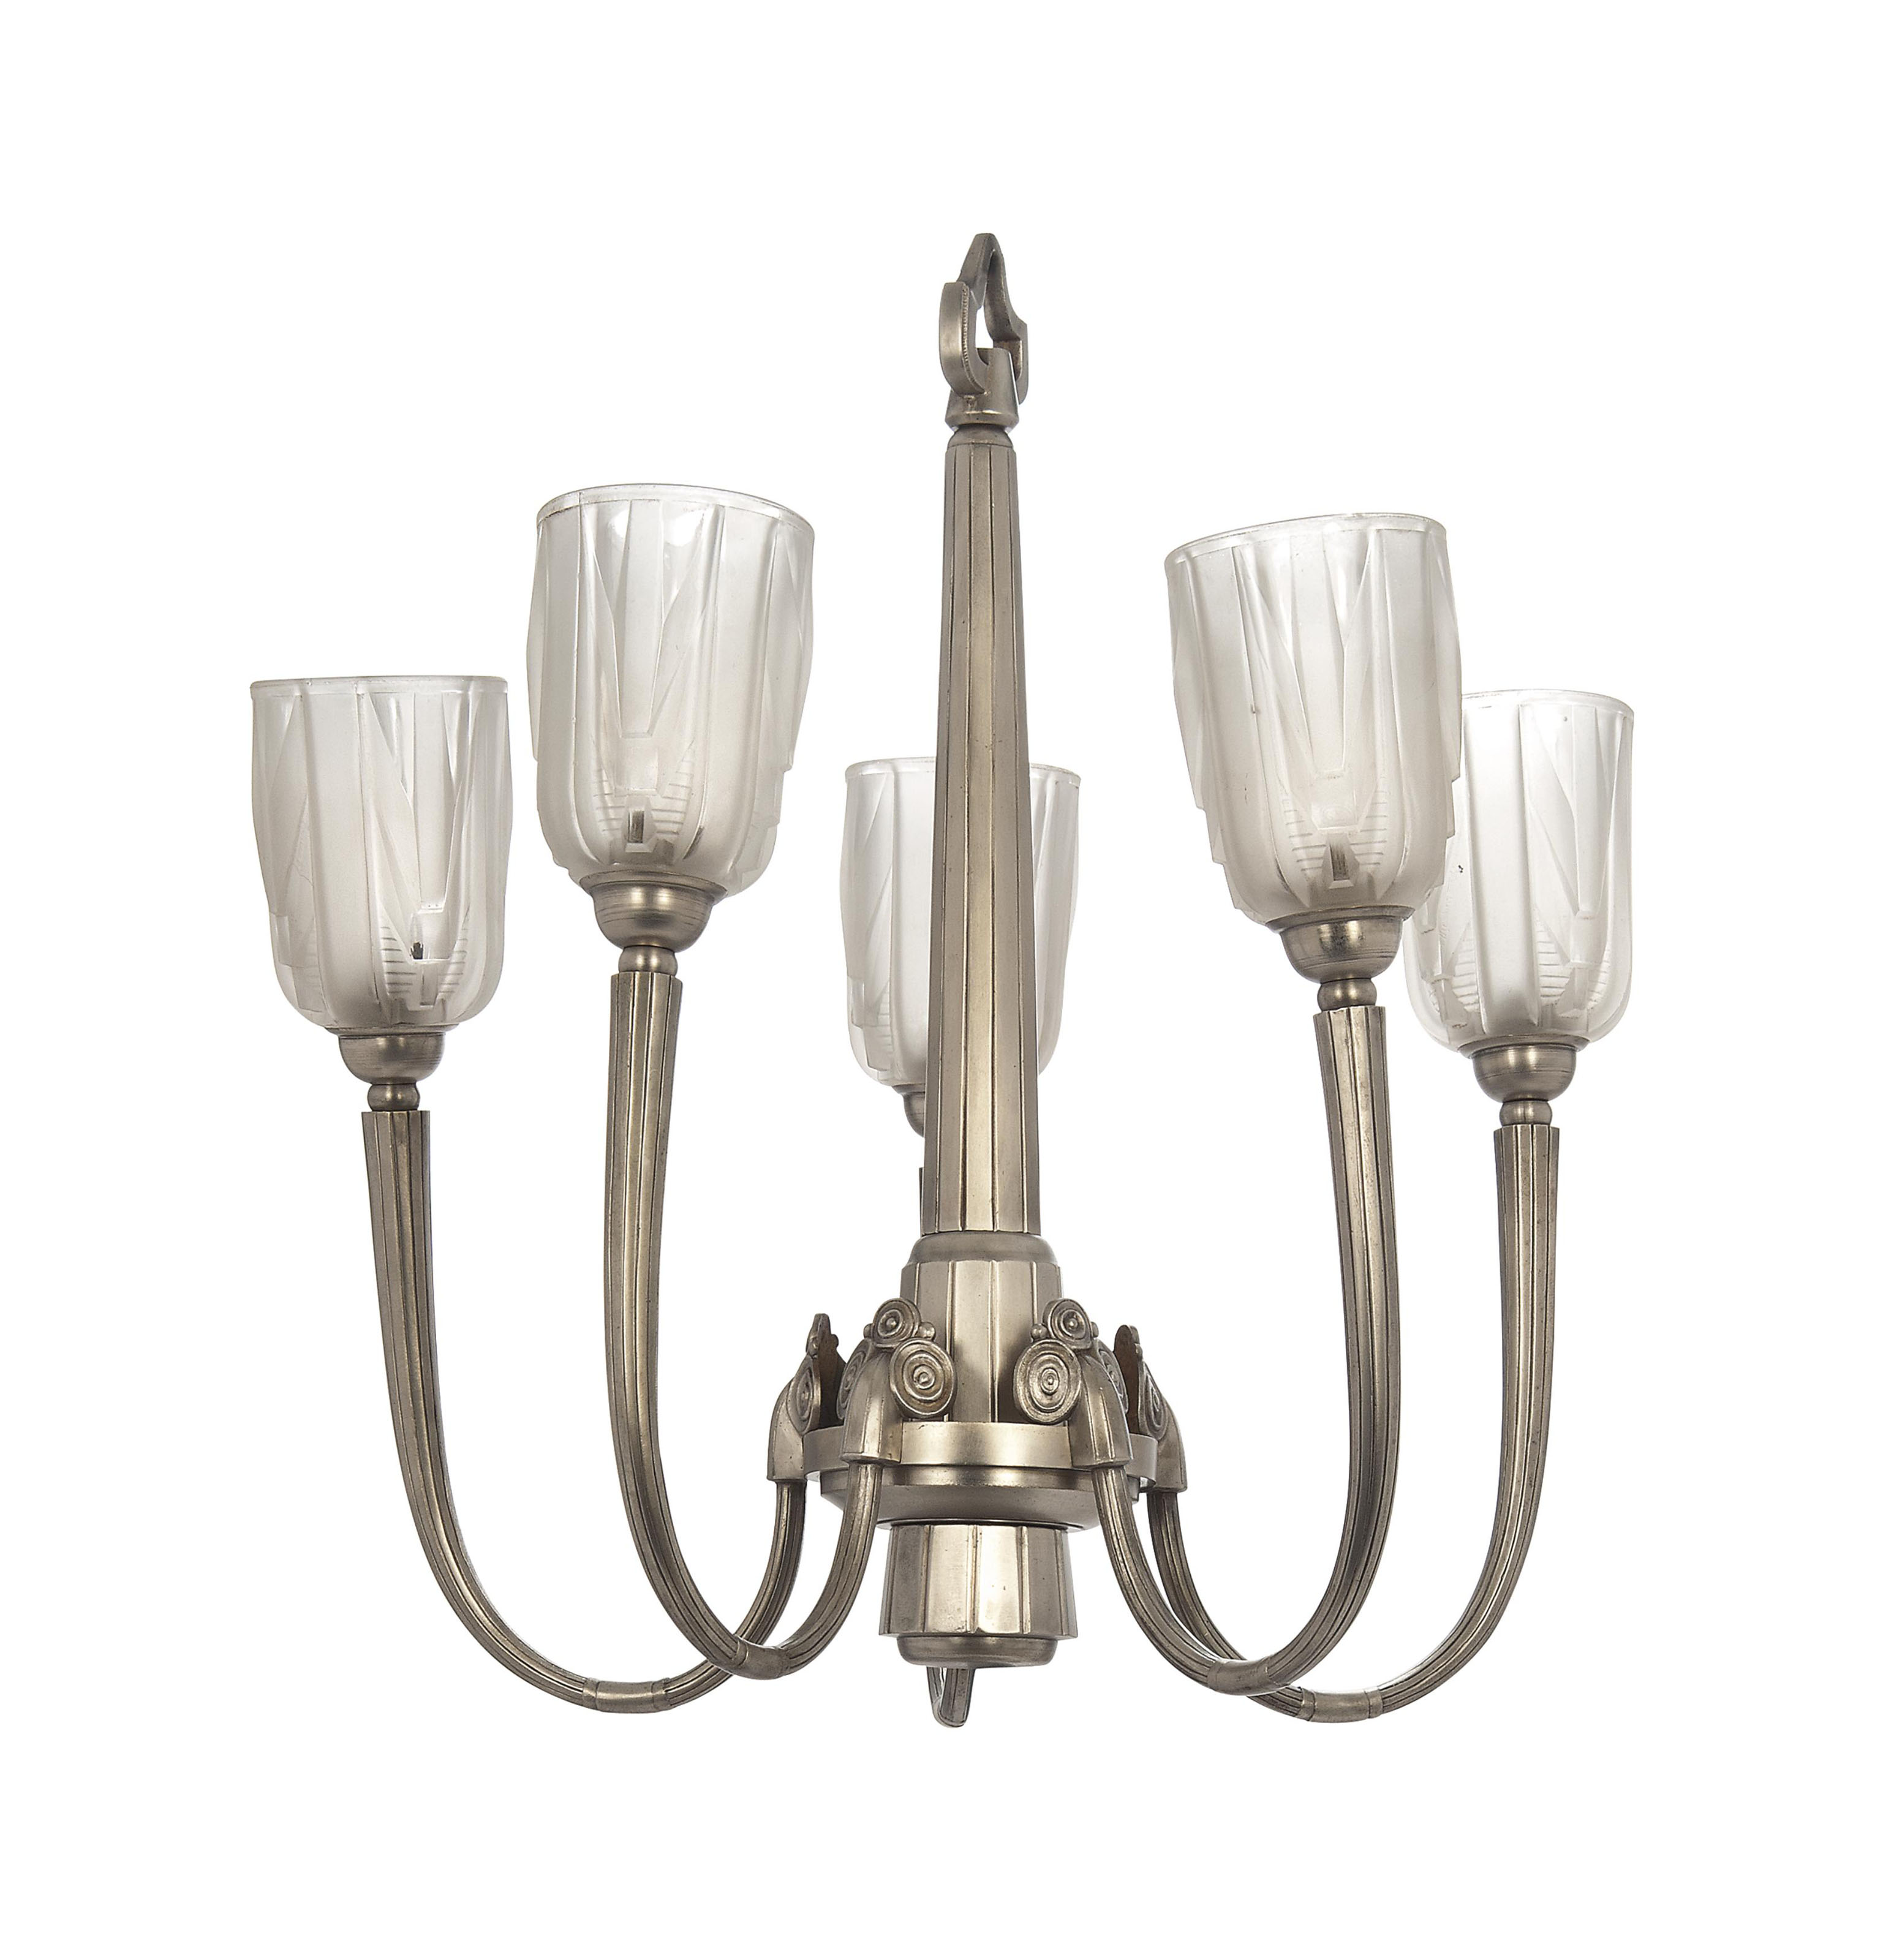 A MULLER FRÈRES SILVERED METAL AND MOULDED GLASS FIVE BRANCH CEILING LIGHT